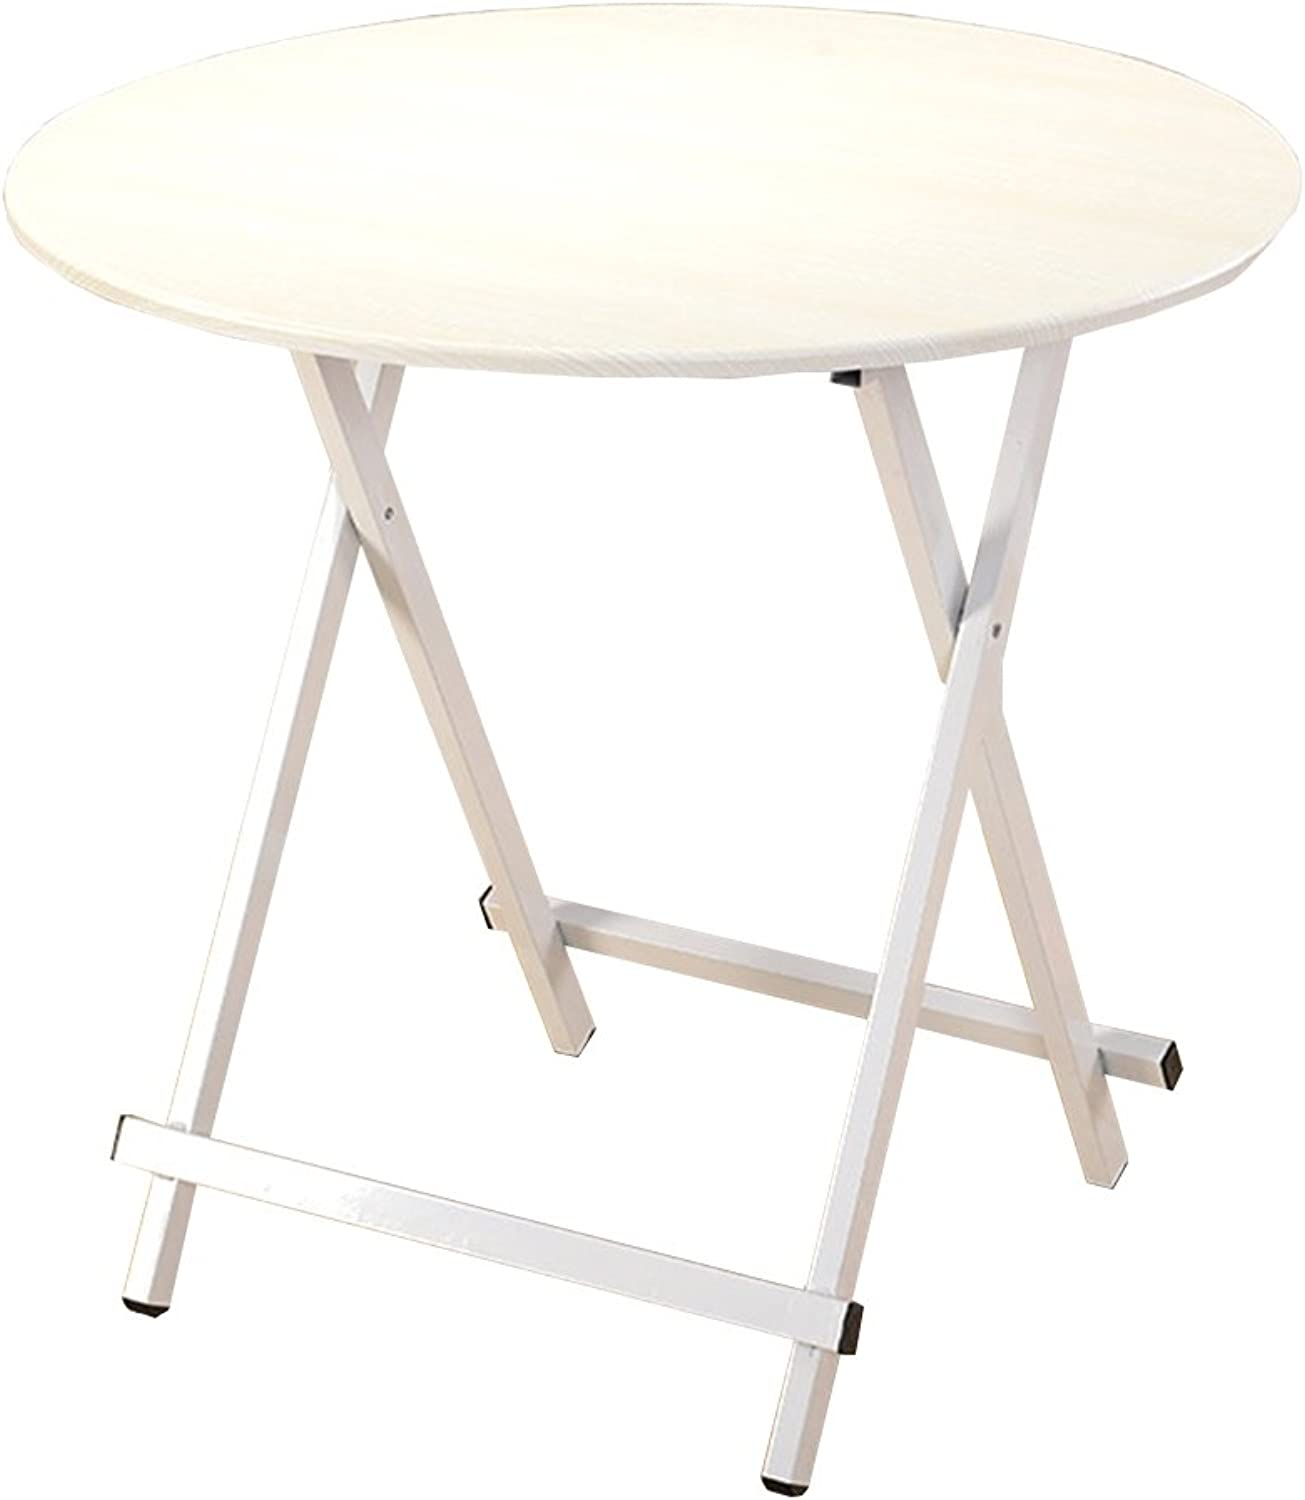 DQMSB Folding Table Small Round Table Dining Table Student Table Simple Table Writing Desk (color   White, Size   60  55cm)